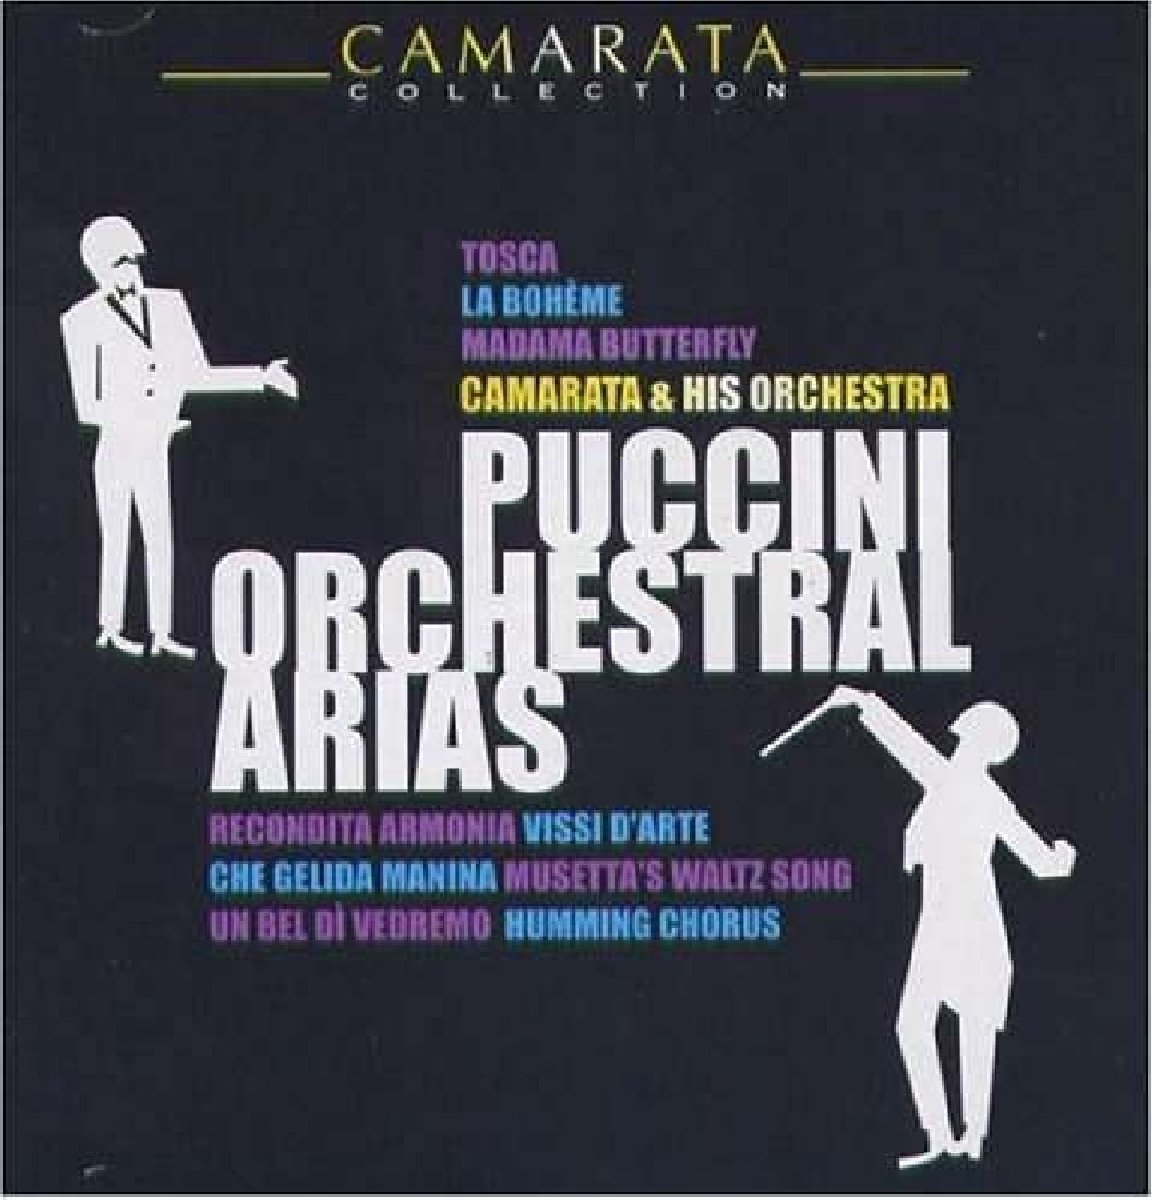 Puccini Orchestral Arias by Avid Records Uk